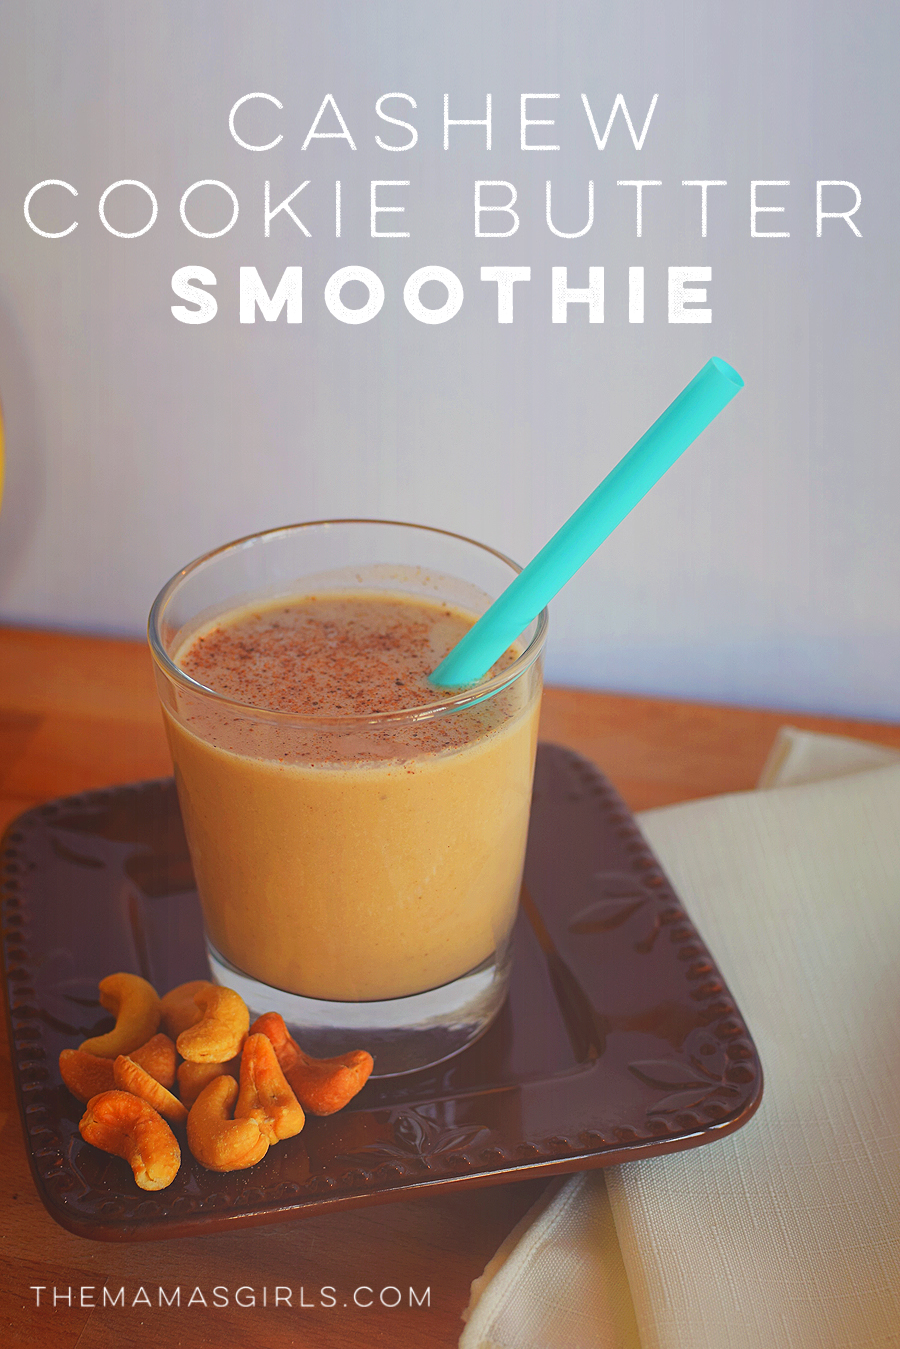 Cashew Cookie Butter Smoothie!